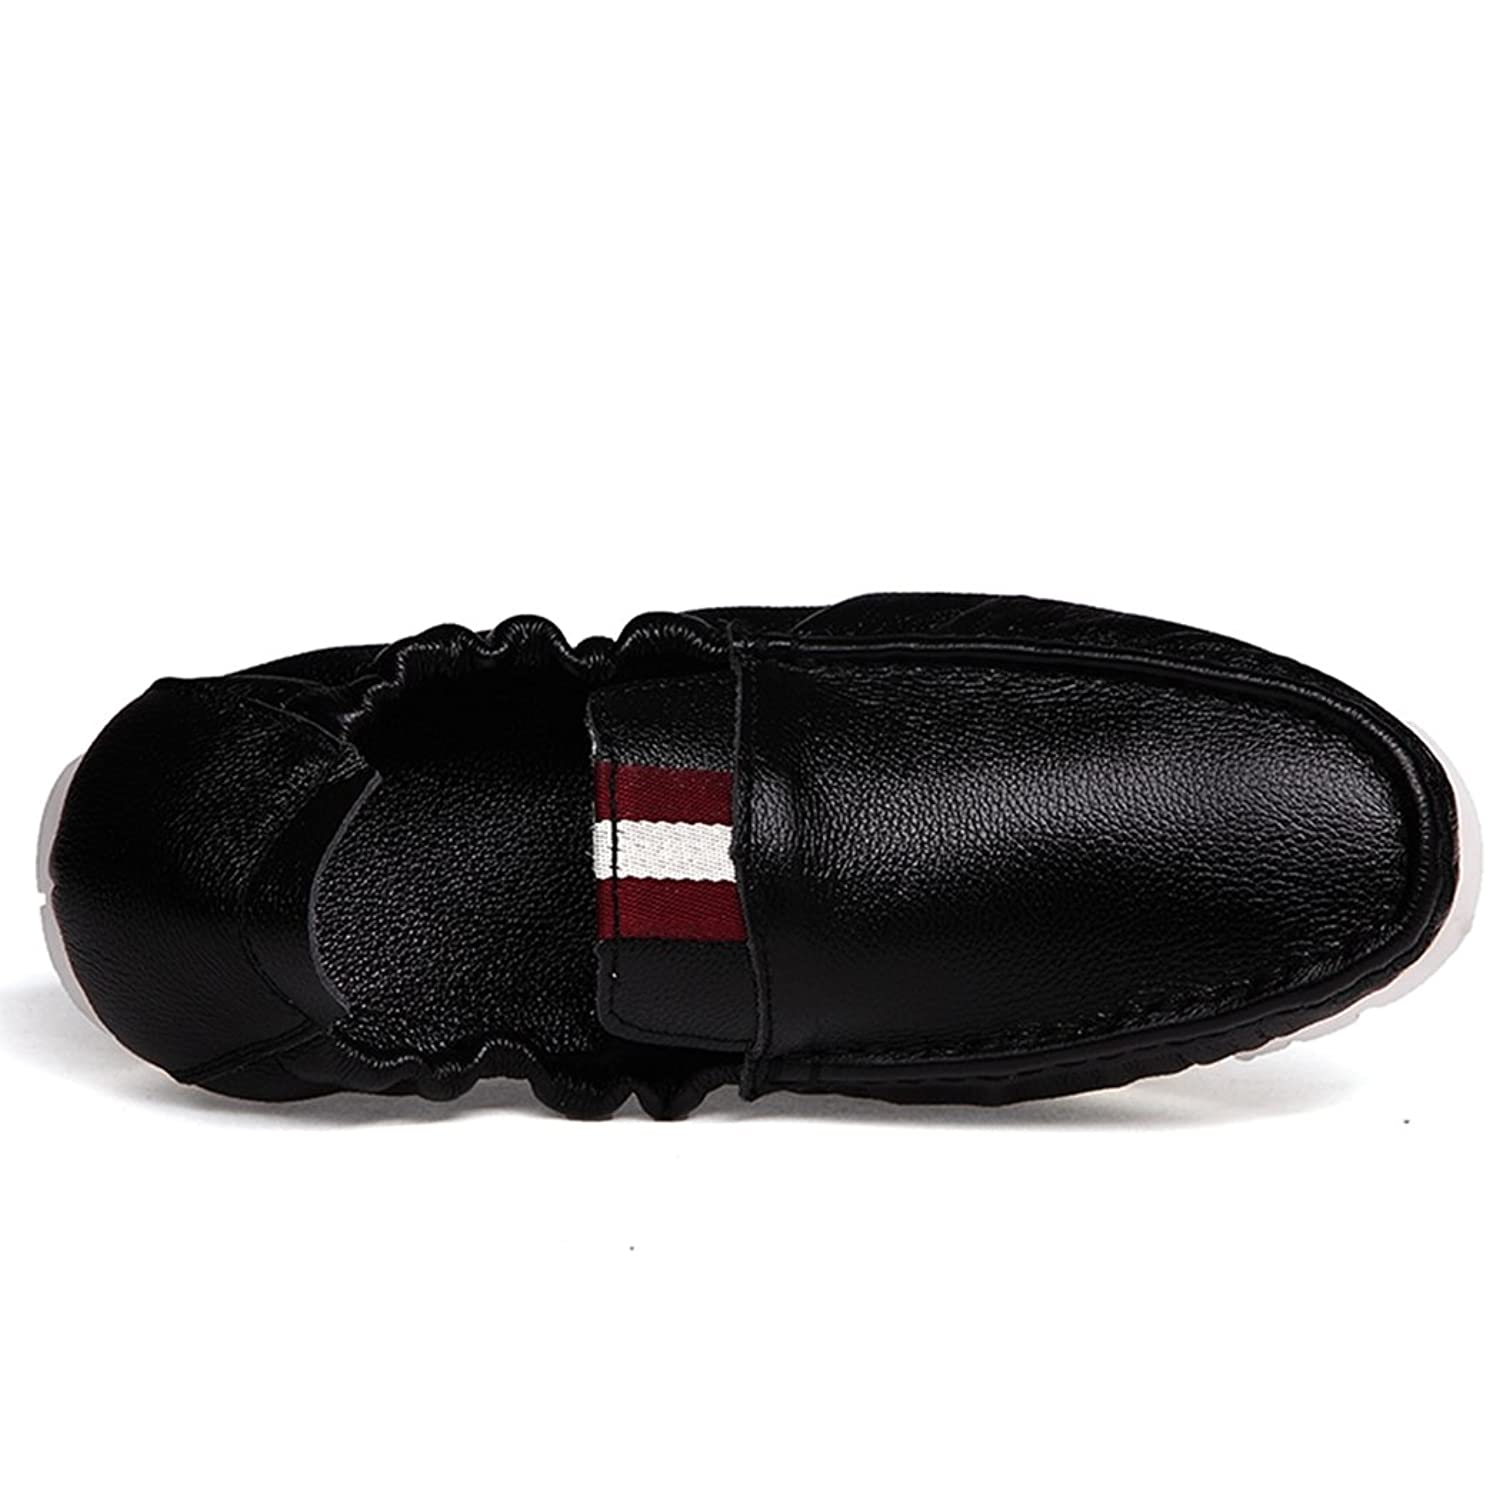 Mens Casual Loafer England Design Work School Shoes: Amazon.co.uk: Shoes &  Bags